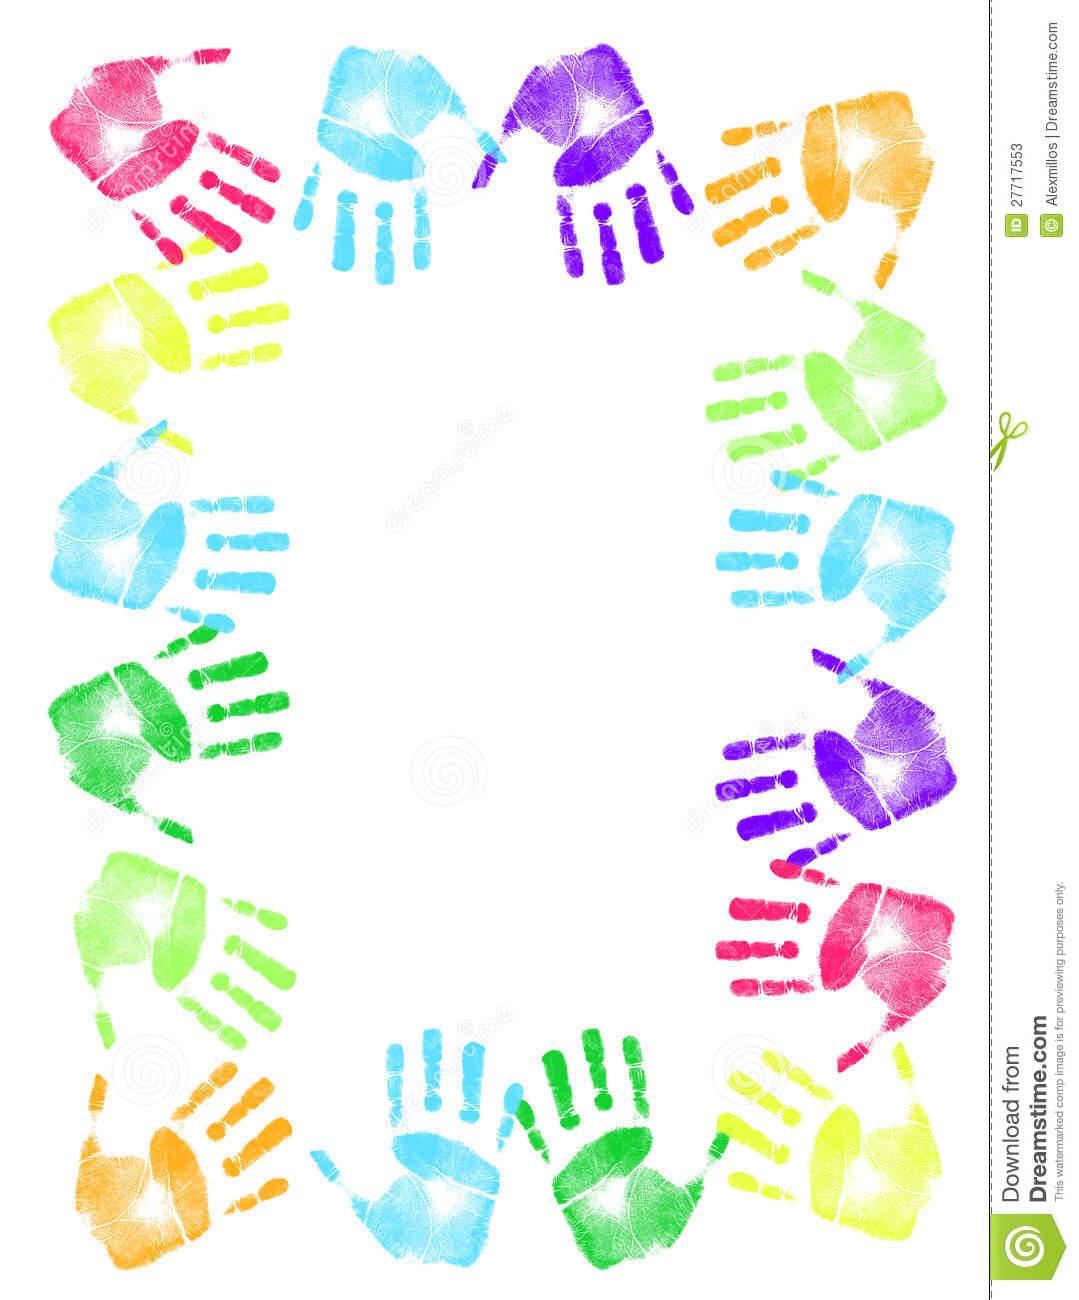 Colorful hand print frame stock illustration. Illustration of green ...